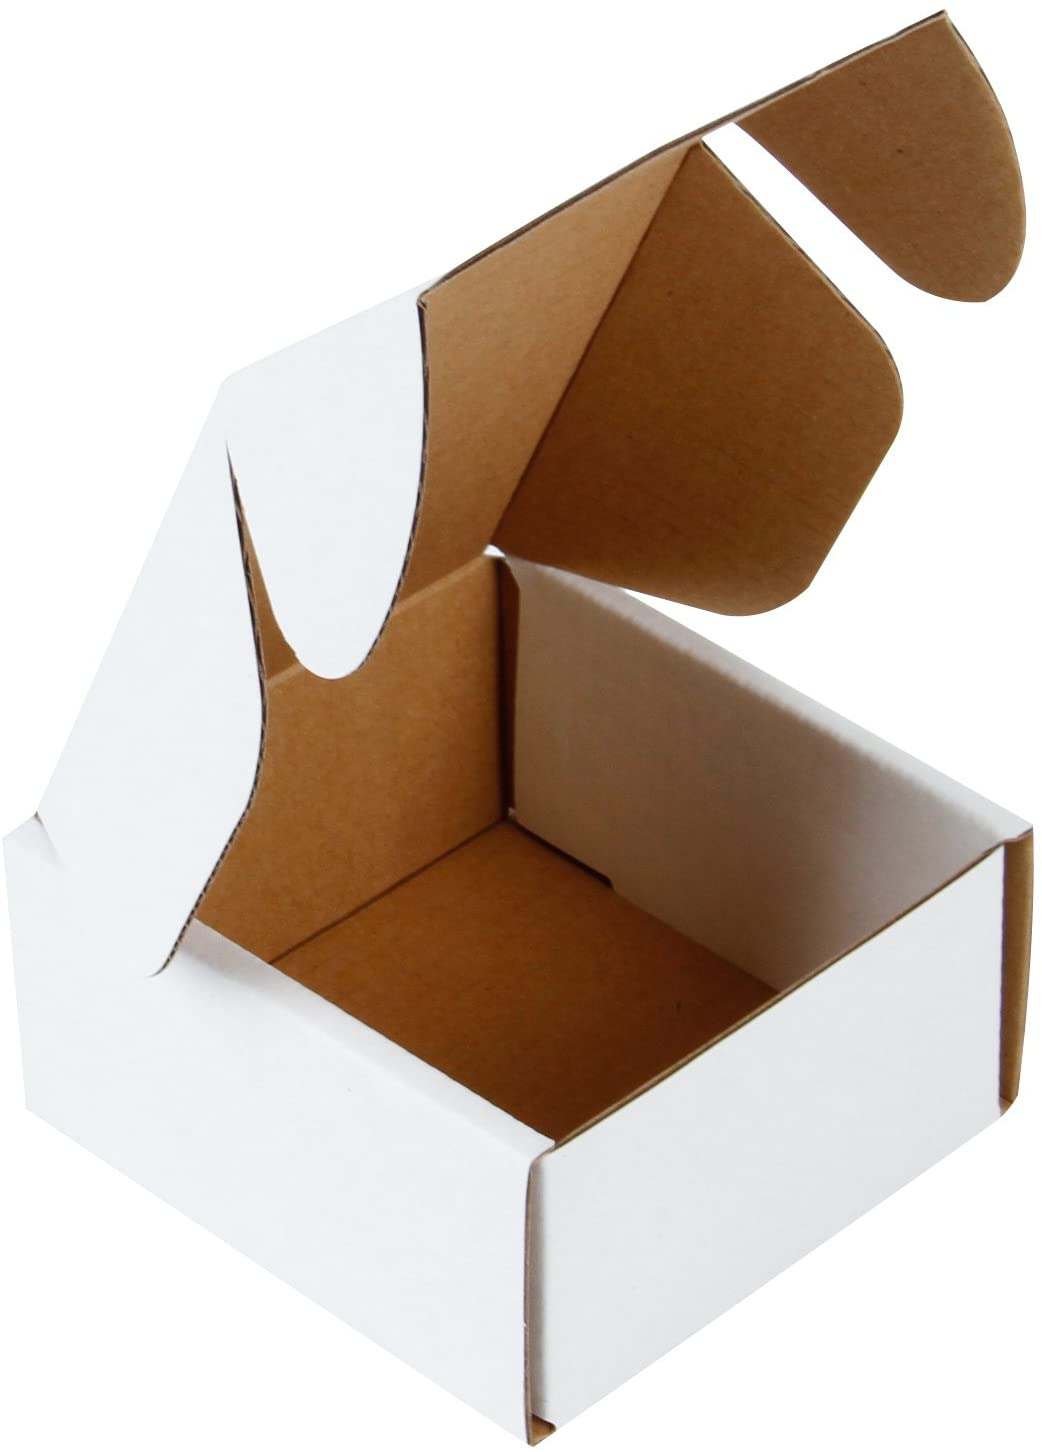 "RUSPEPA Recyclable Corrugated Box Mailers - Cardboard Box Perfect for Shipping Small - 4"" x 4"" x 2"" - 50 Pack - Oyster White : Office Products"